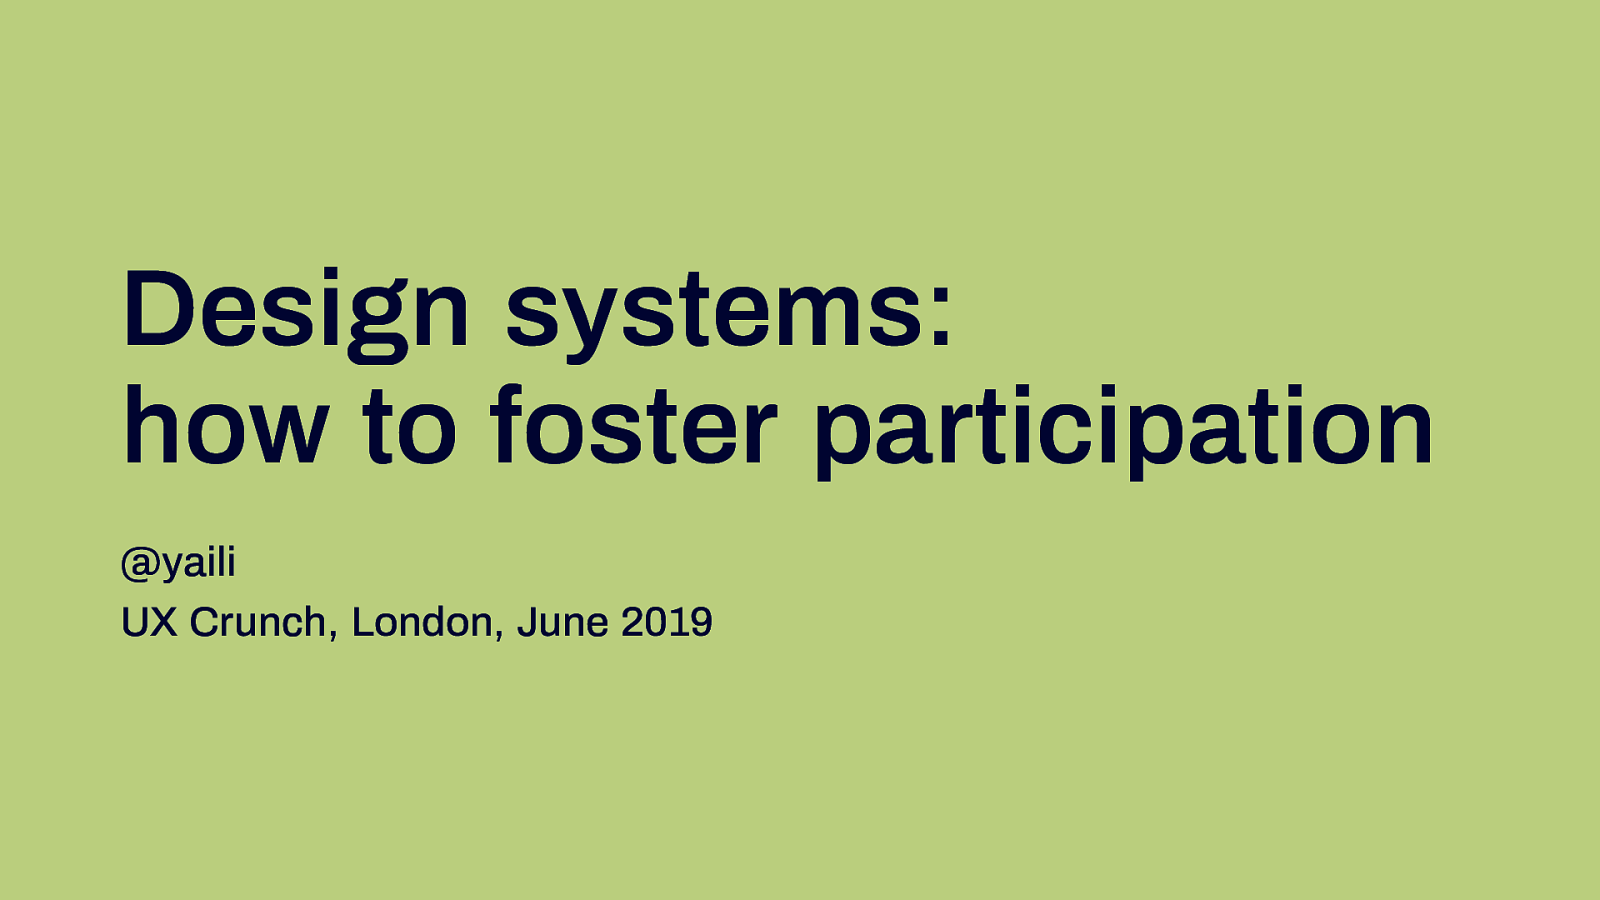 Design system: how to foster participation